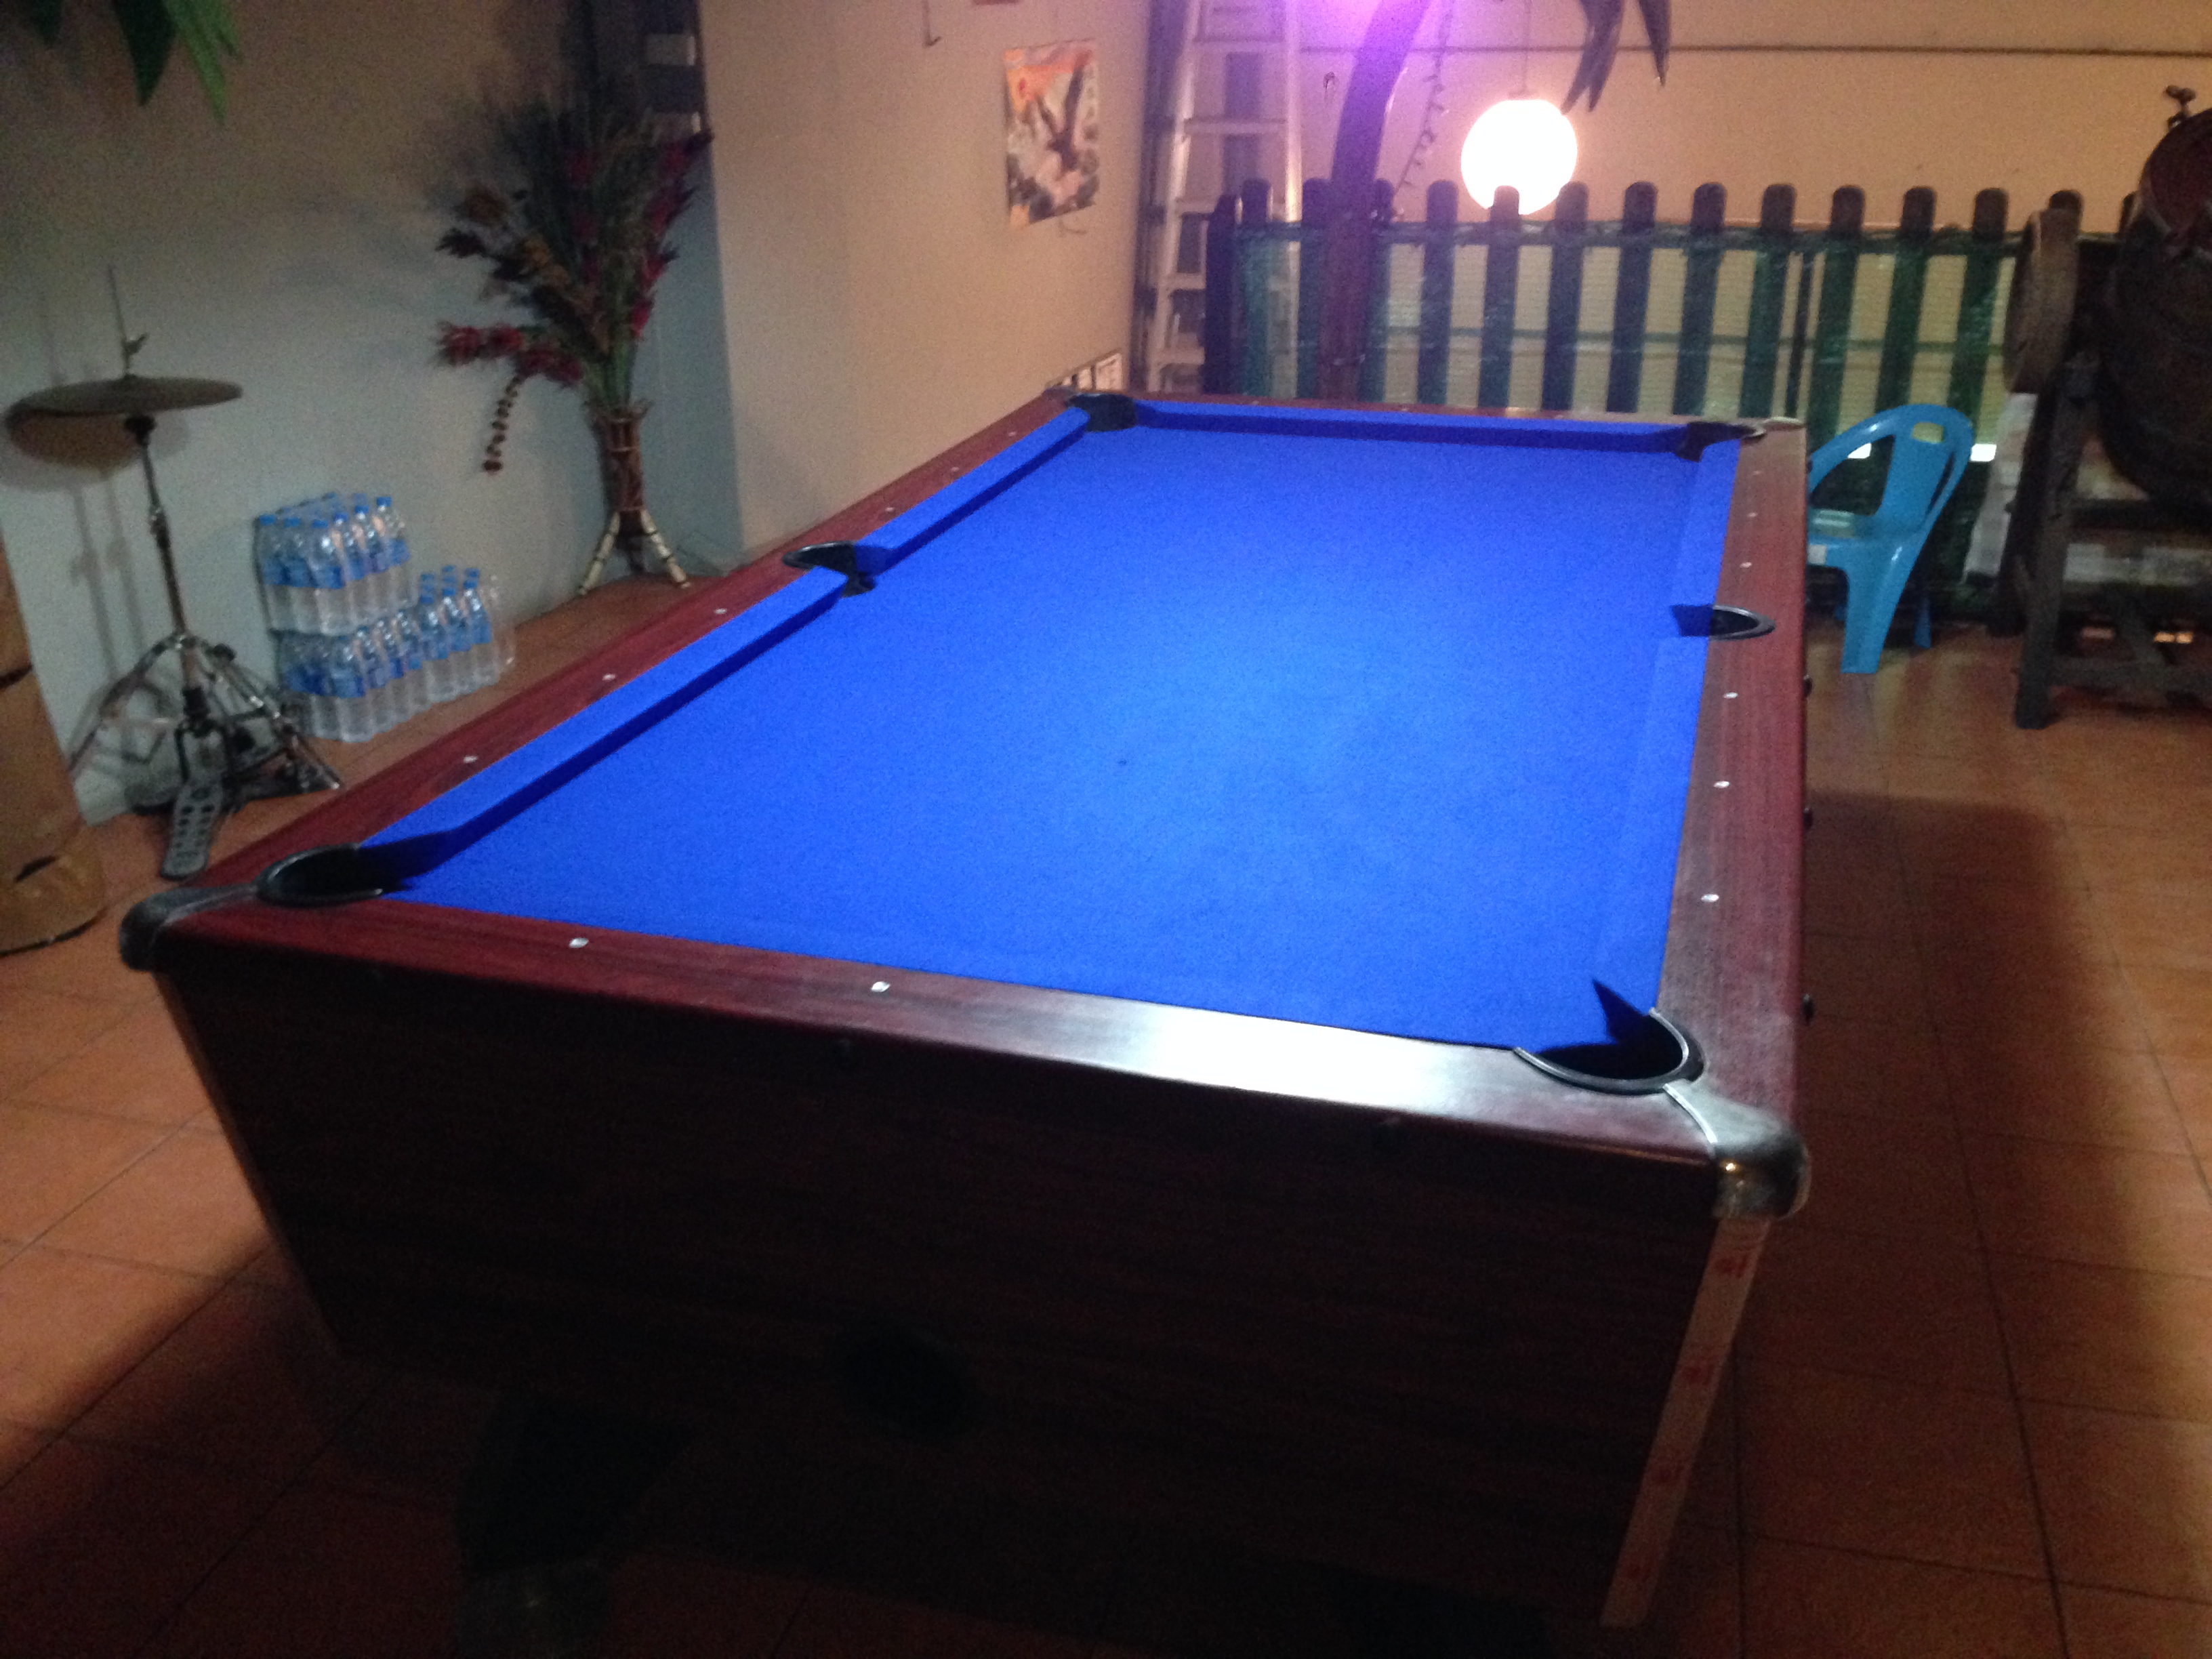 The Table Has Been Professionally Installed And Set Up To Provide A Great  Playing Experience.